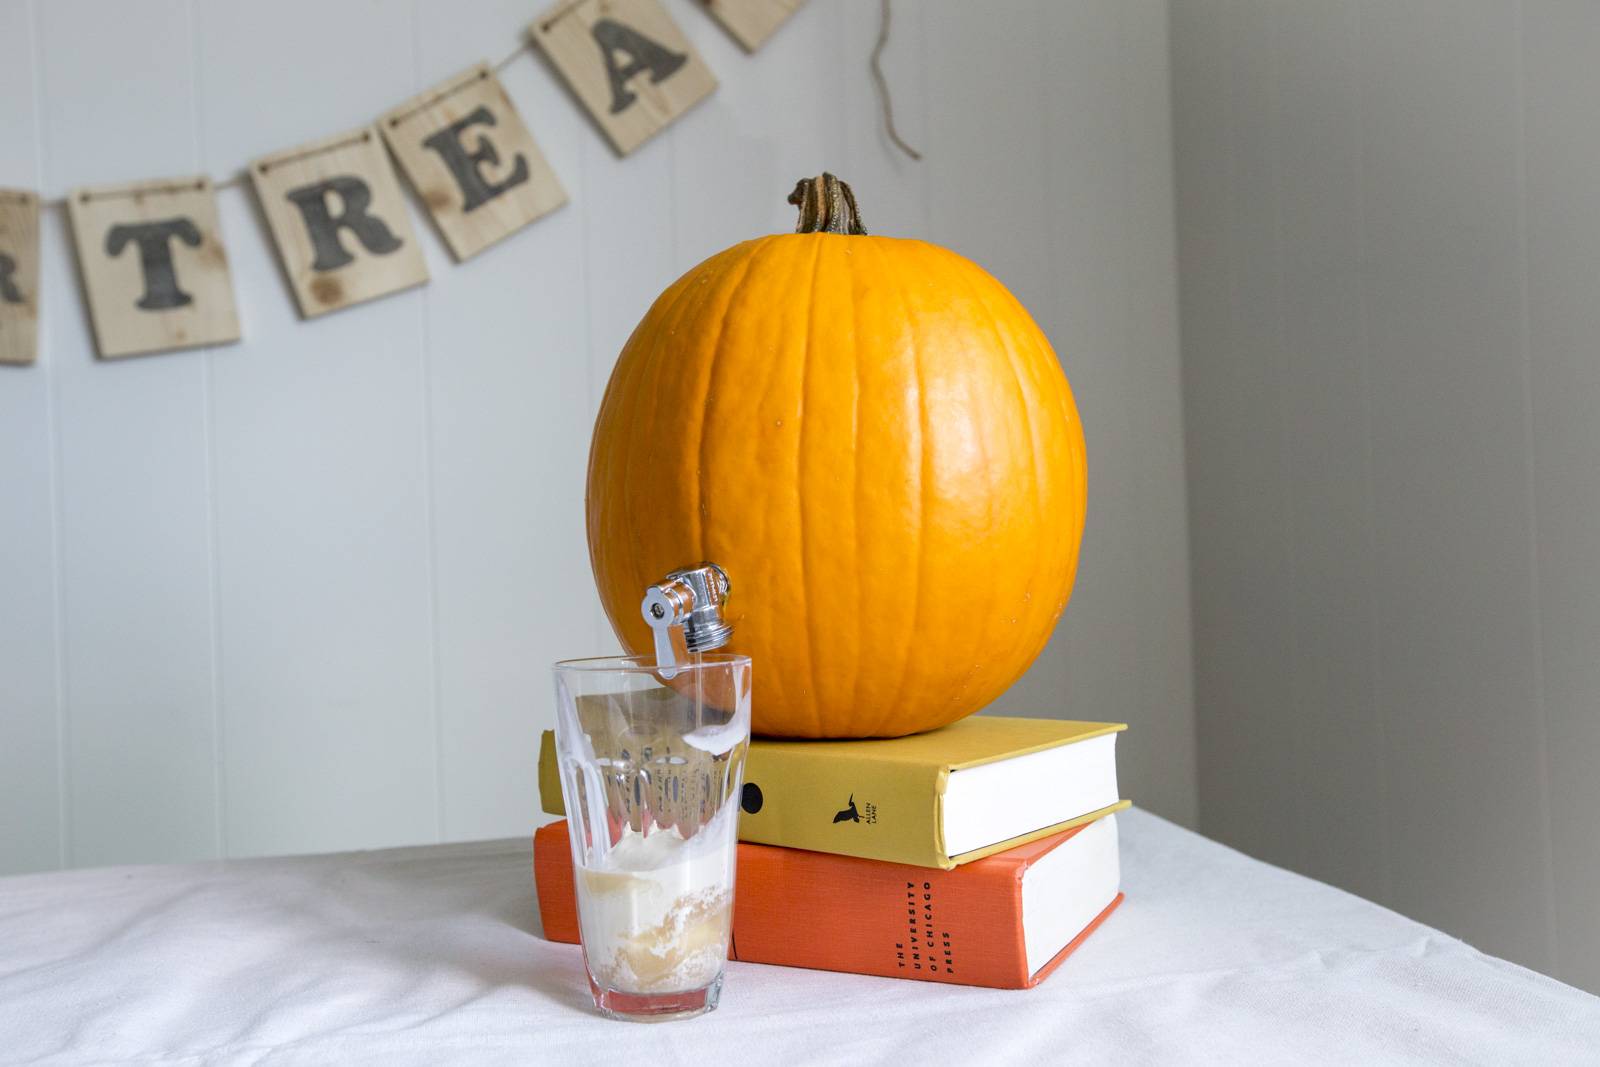 Dunn Diy Seattle Wa Pumpkin Dispenser 24